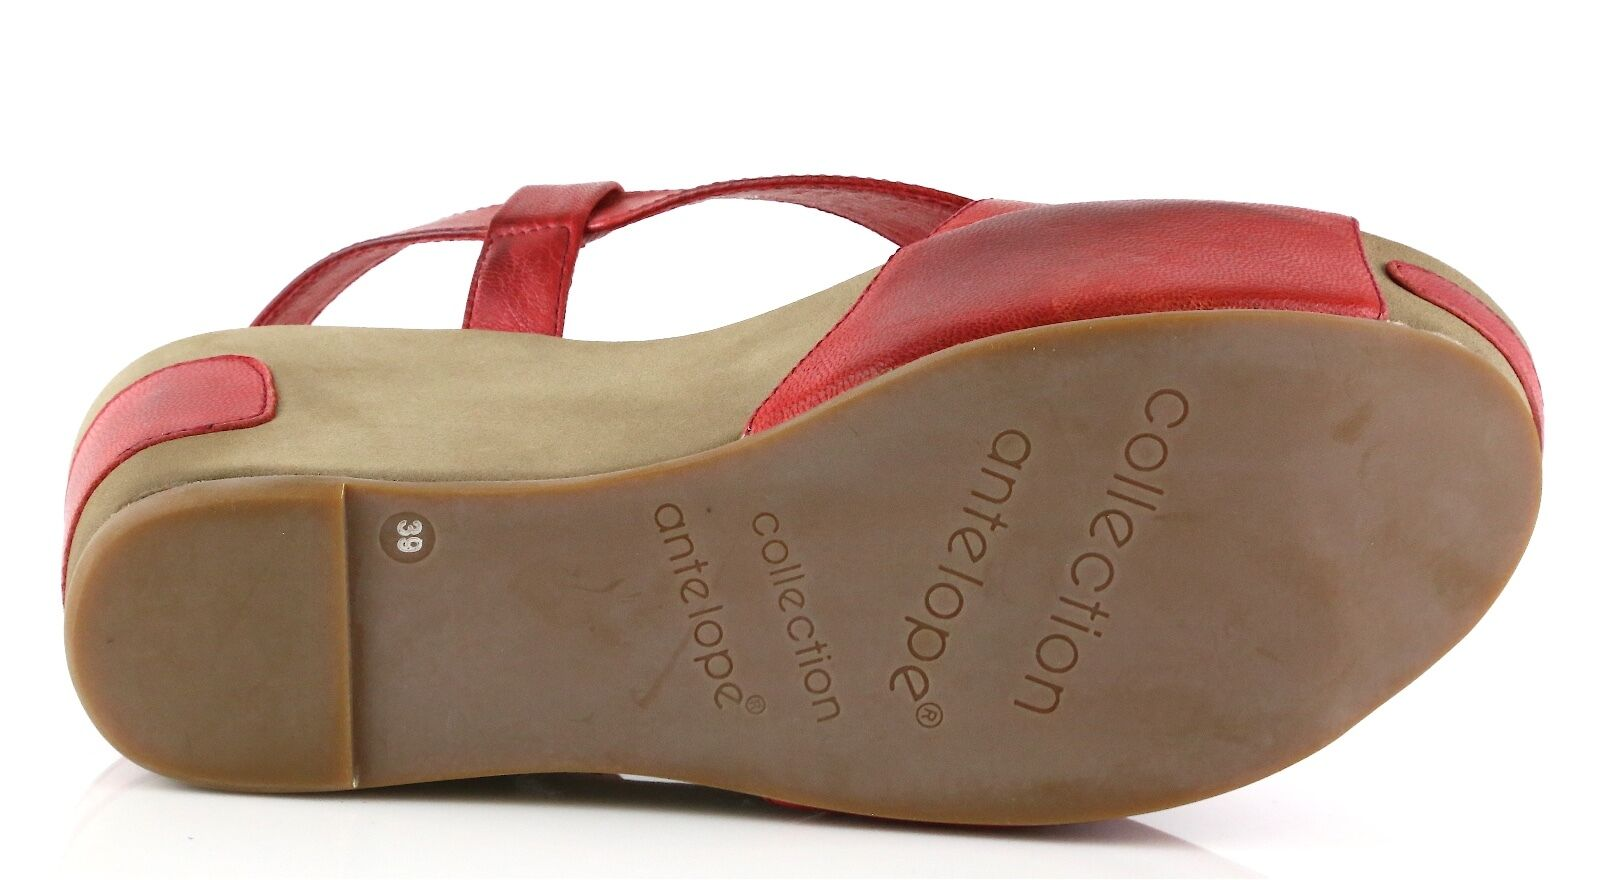 Antelope Woman's Red Leather Wedge Sandals 3252 Size 37 37 37 EU NEW dcebd2